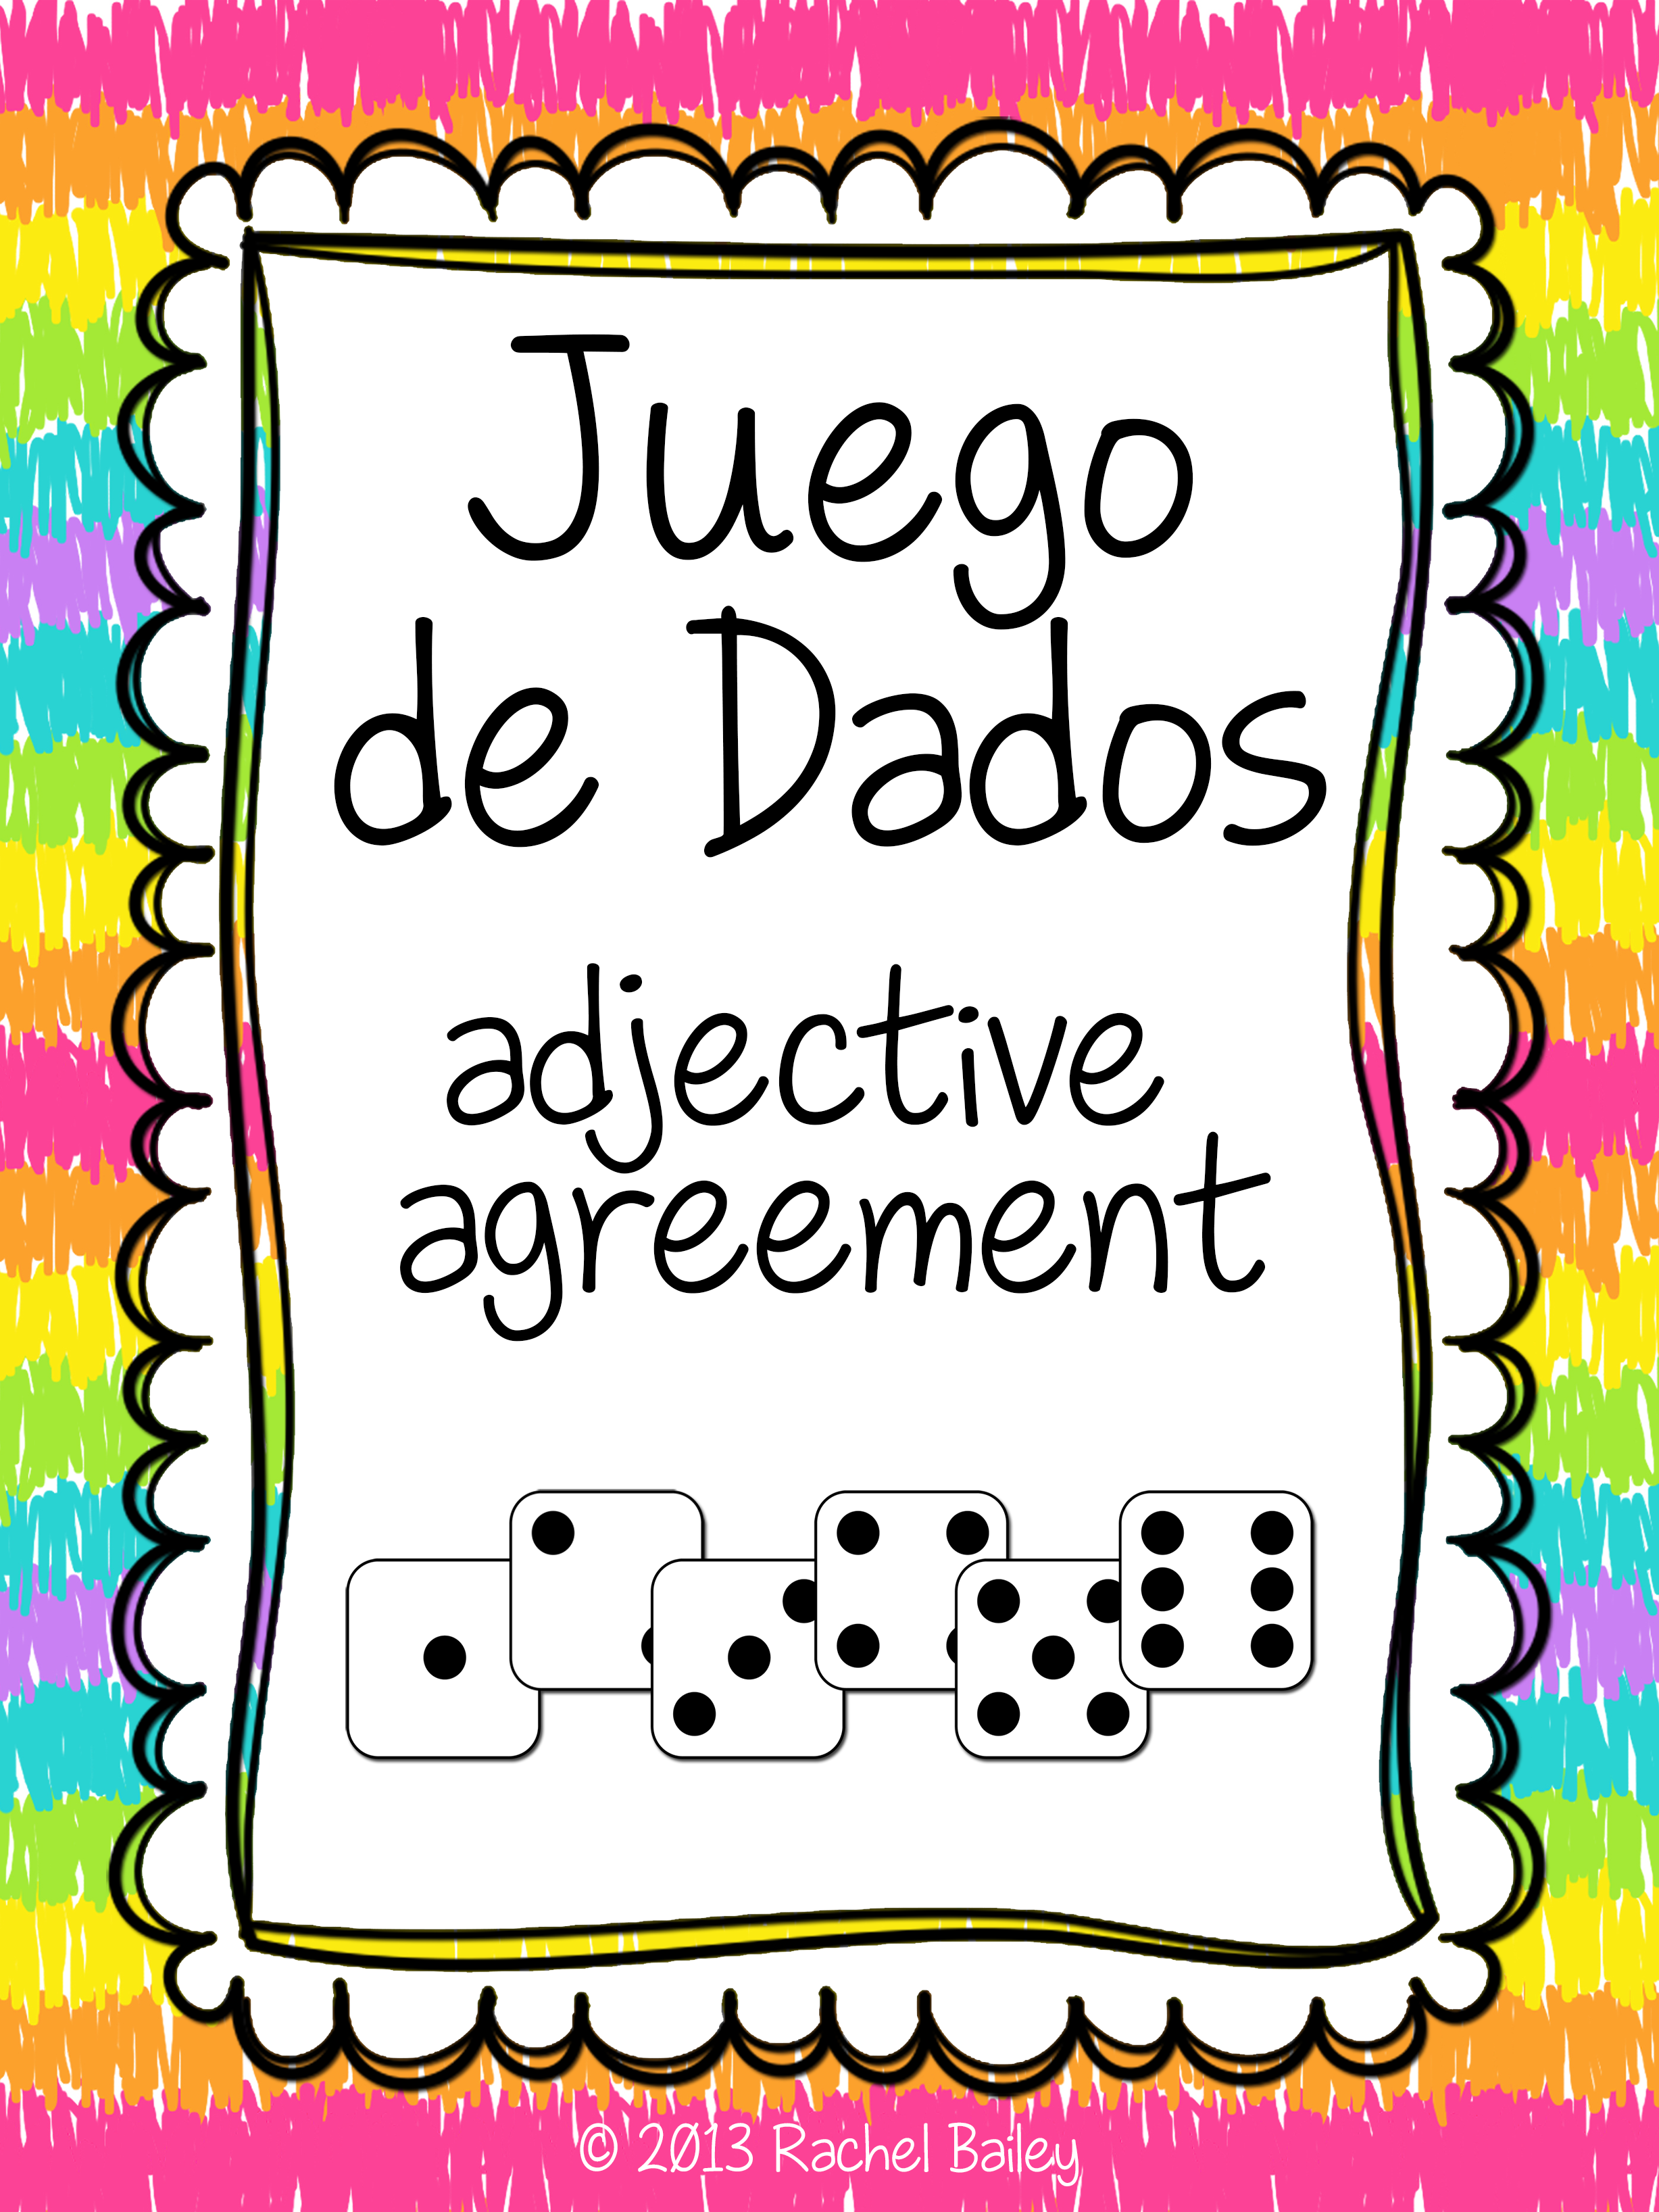 Dice Game Juego De Dados Adjective Agreement Pinterest